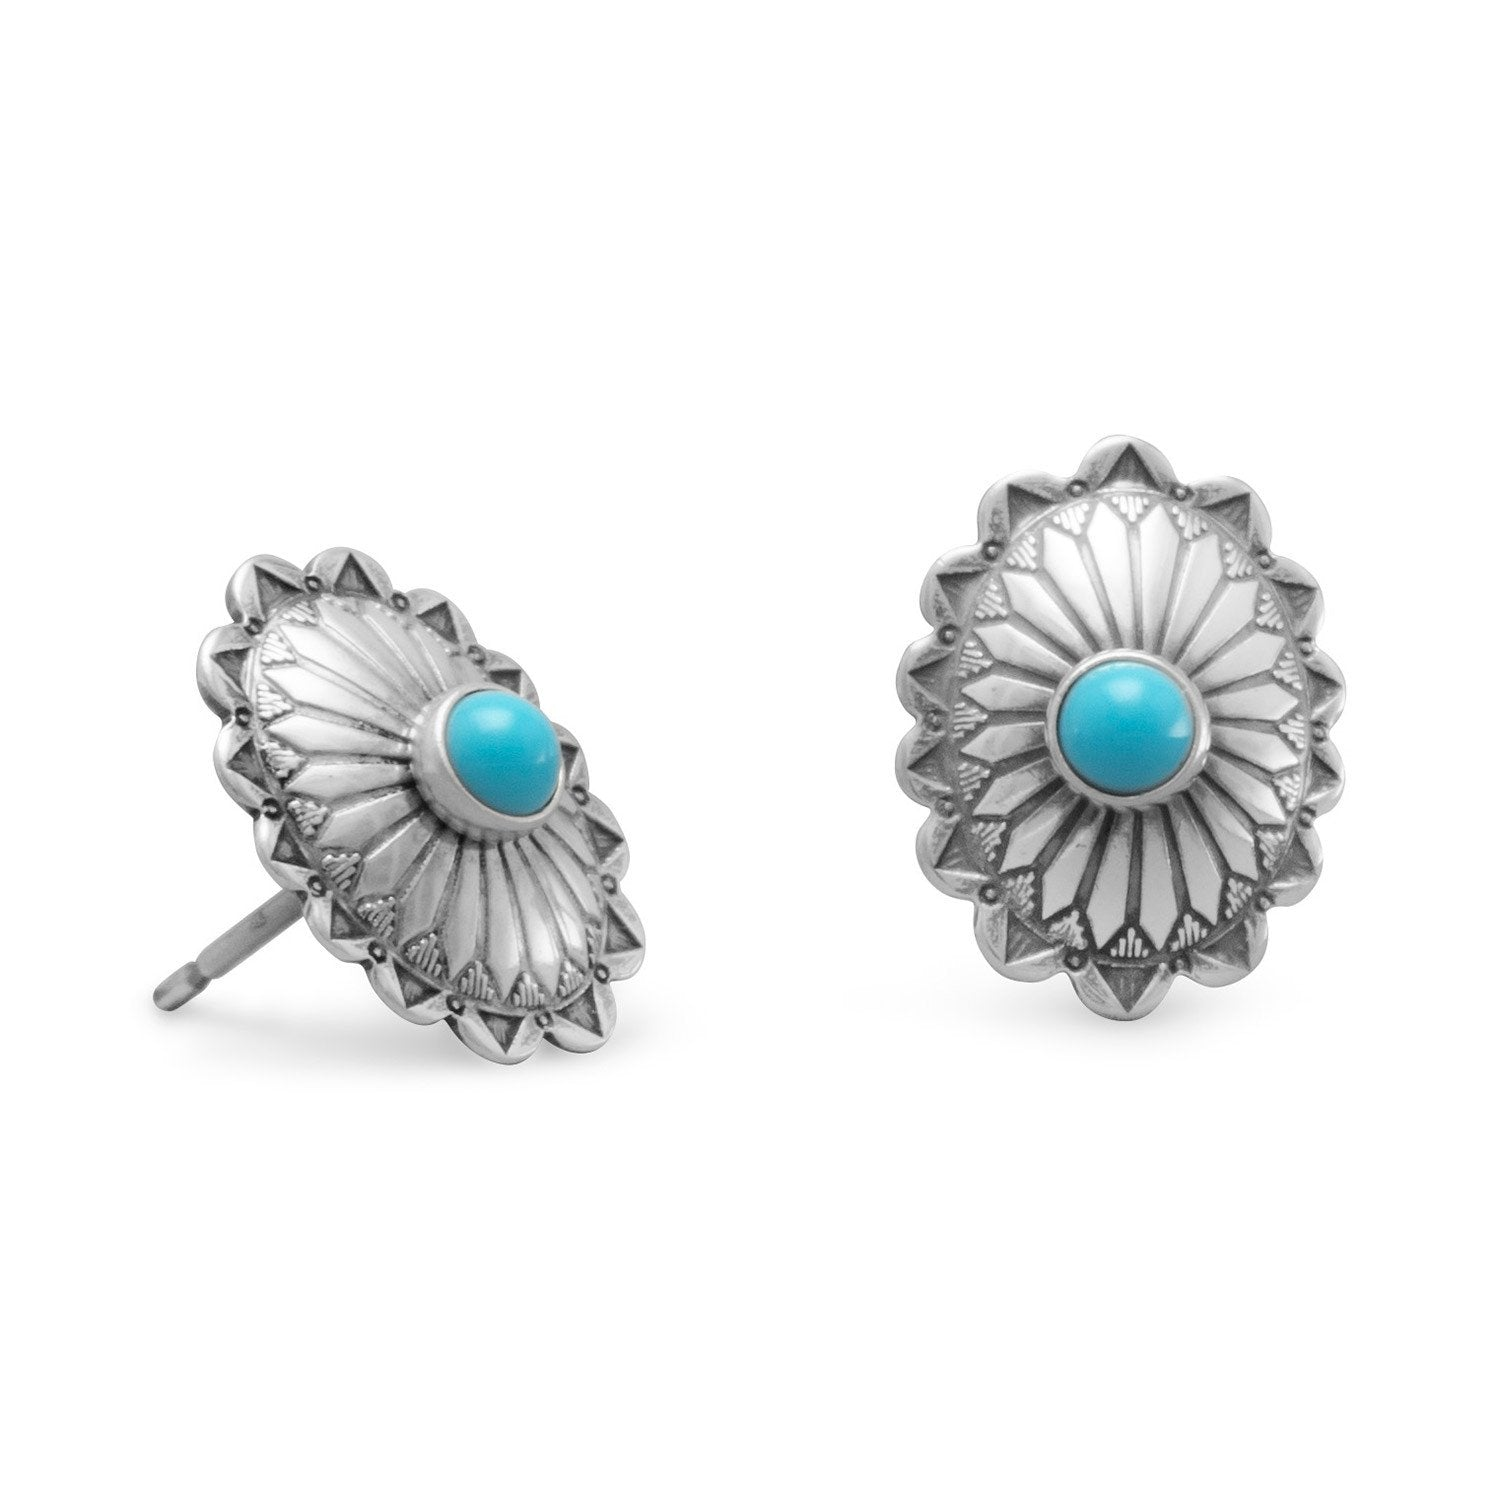 Oxidized Turquoise Concho Stud Earrings - Rocky Mt. Outlet Inc - Shop & Save 24/7